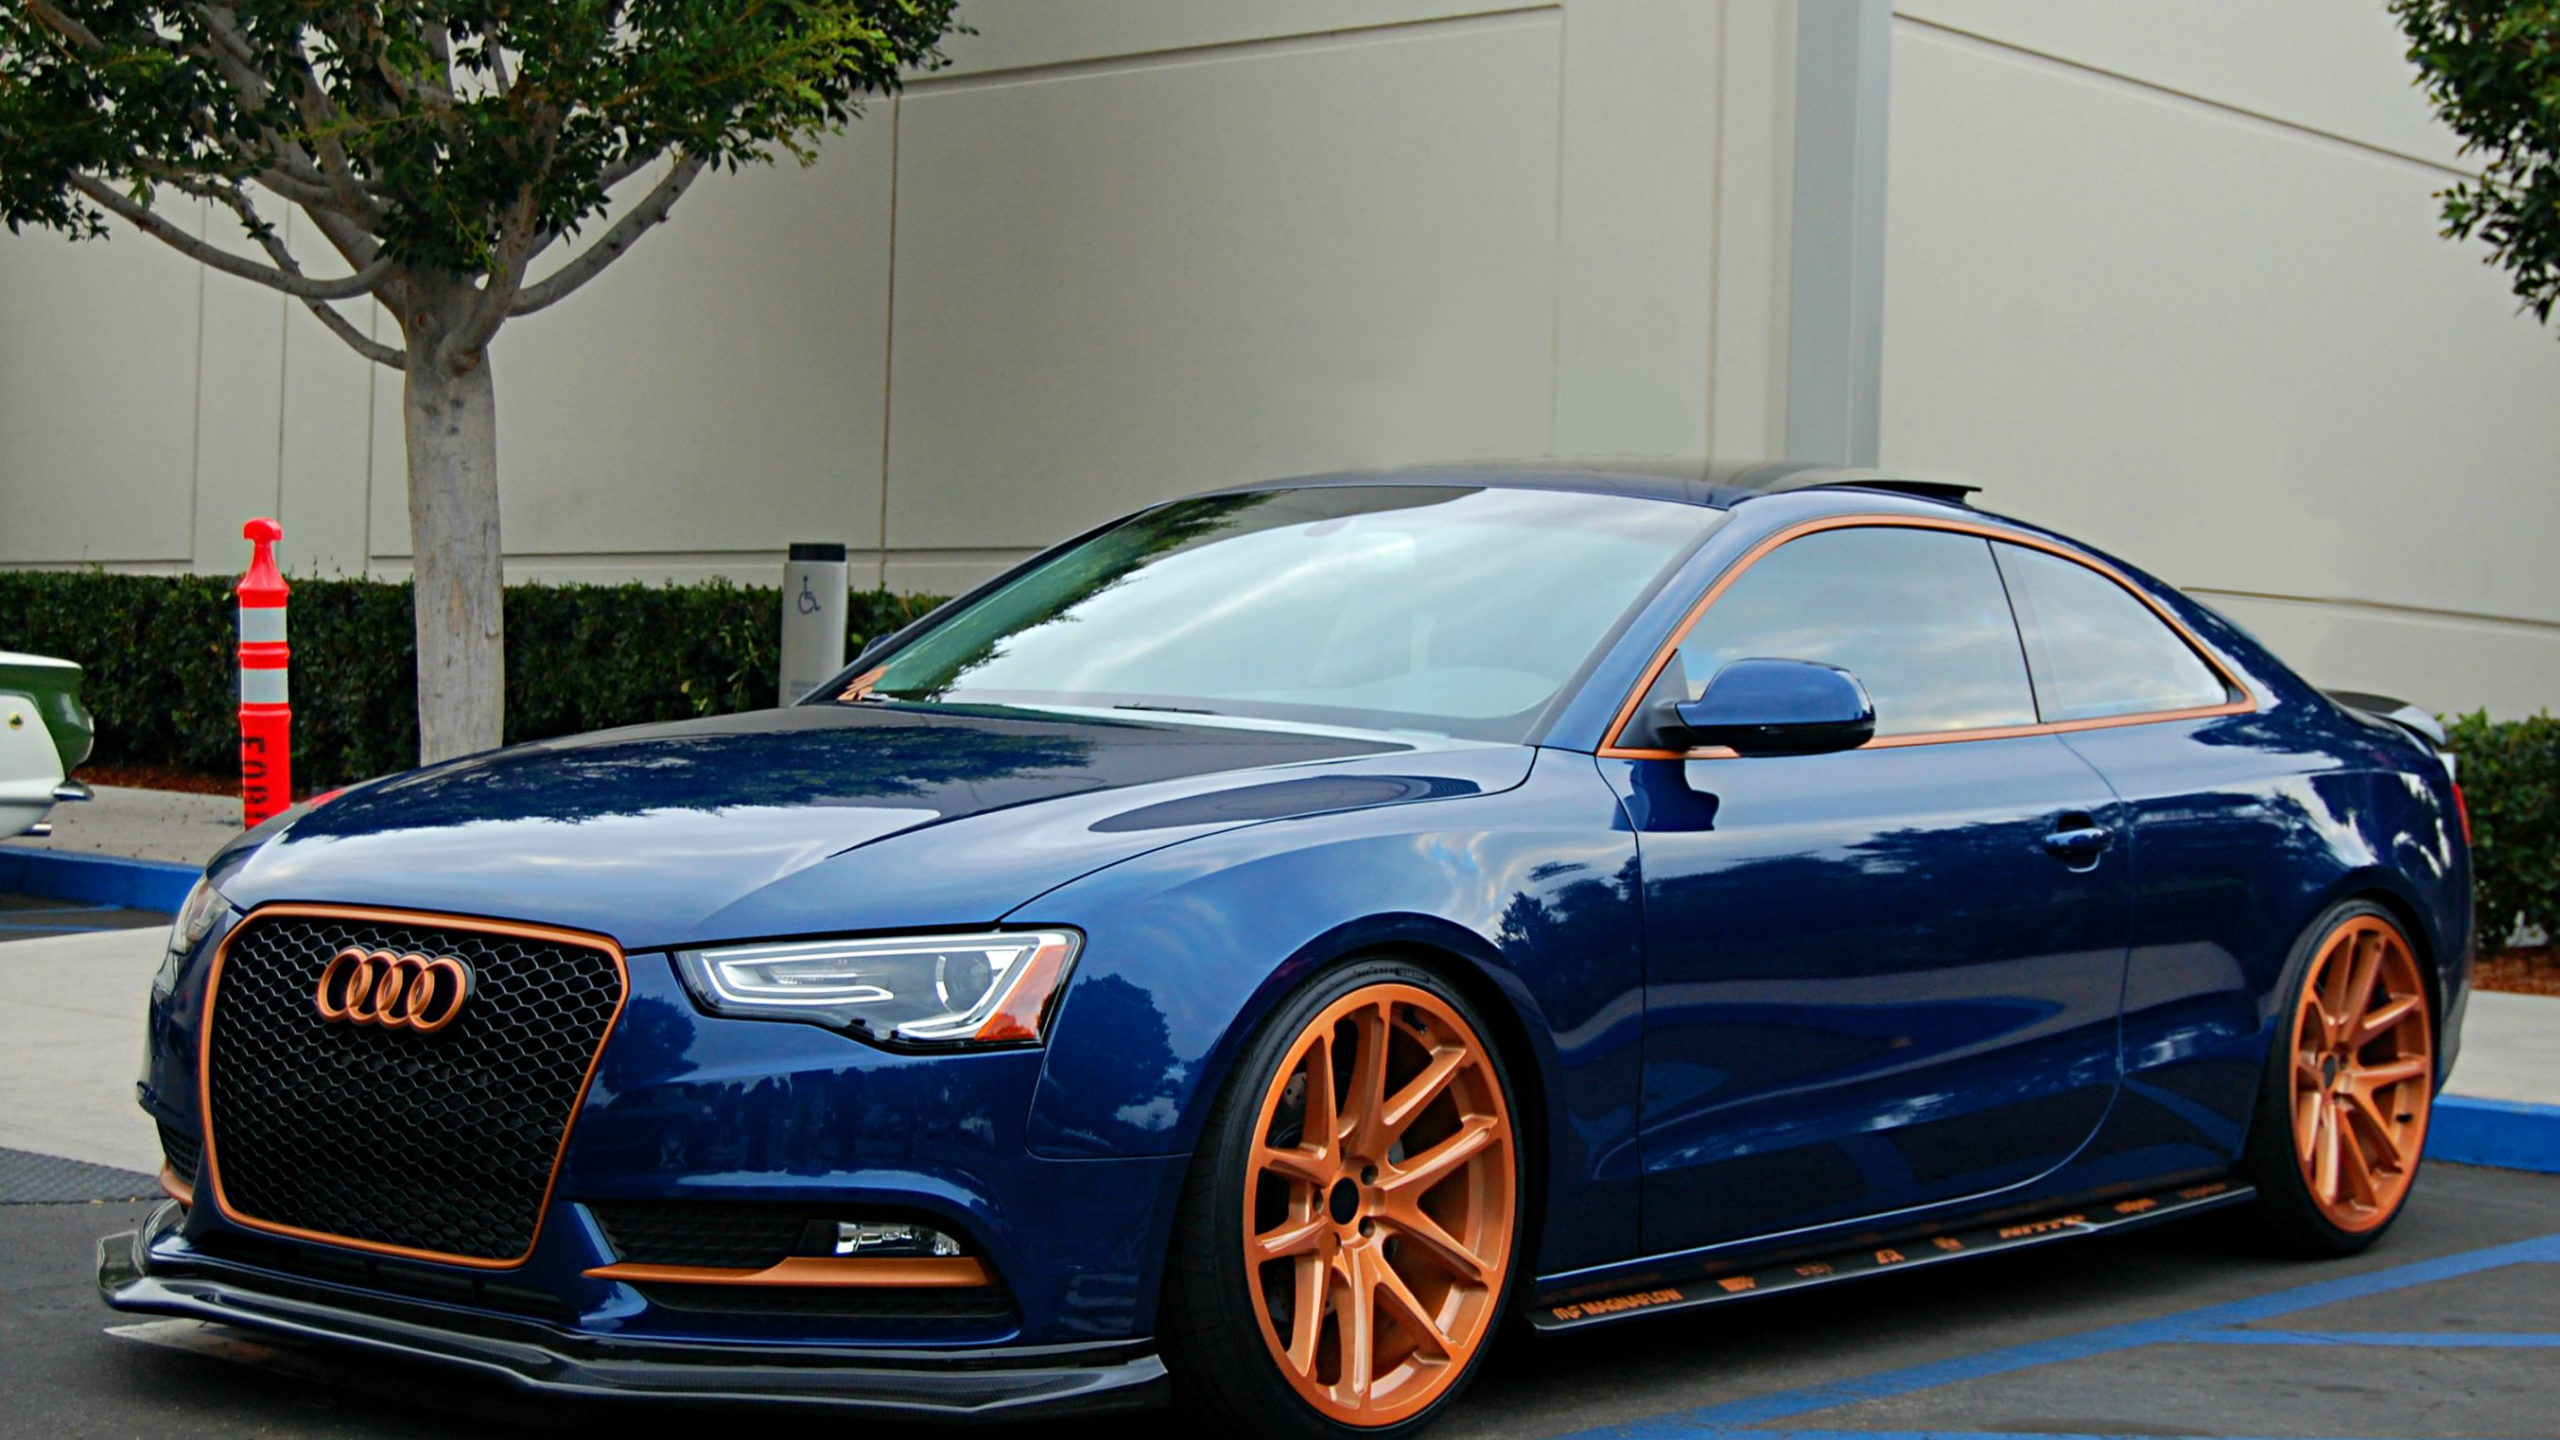 2560x1440 - Audi A5 Wallpapers 24